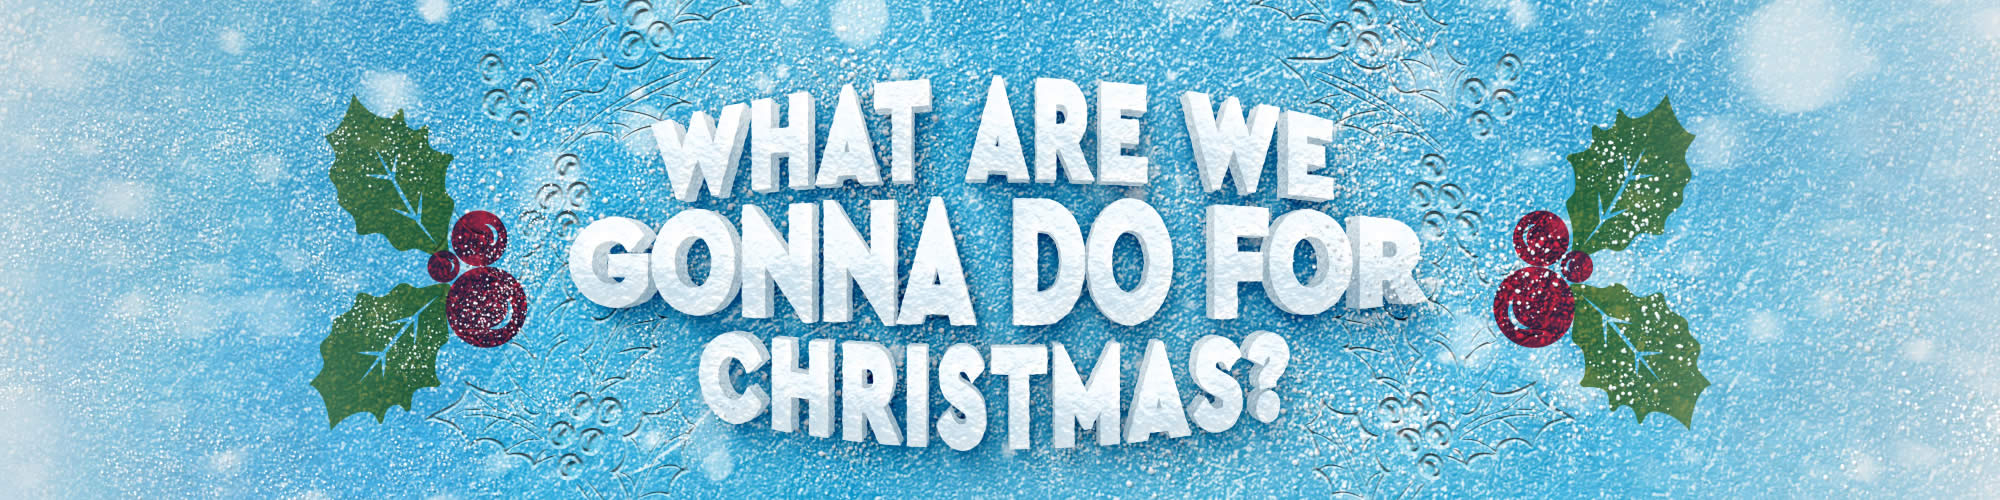 'What Are We Gonna Do For Christmas?' Charity Christmas Song for Alzheimer's Society